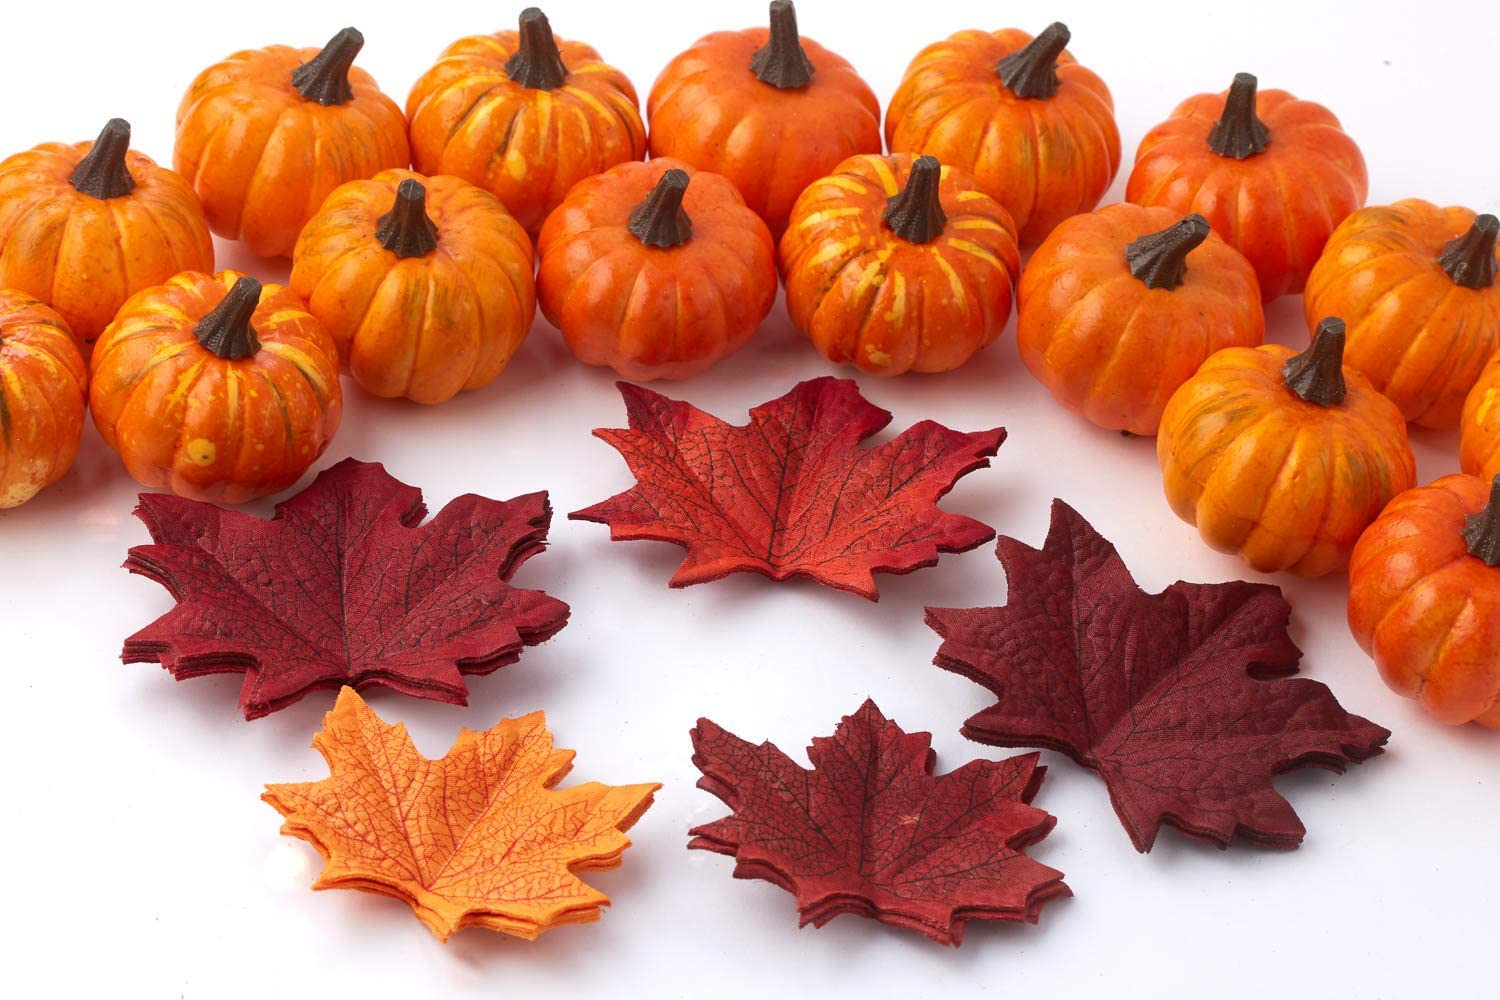 Factory Direct Craft Package of 8 Artificial Pumpkins Leaves and Acorns Autumn Decor Set for Halloween Thanksgiving and Fall Decorating Autumn